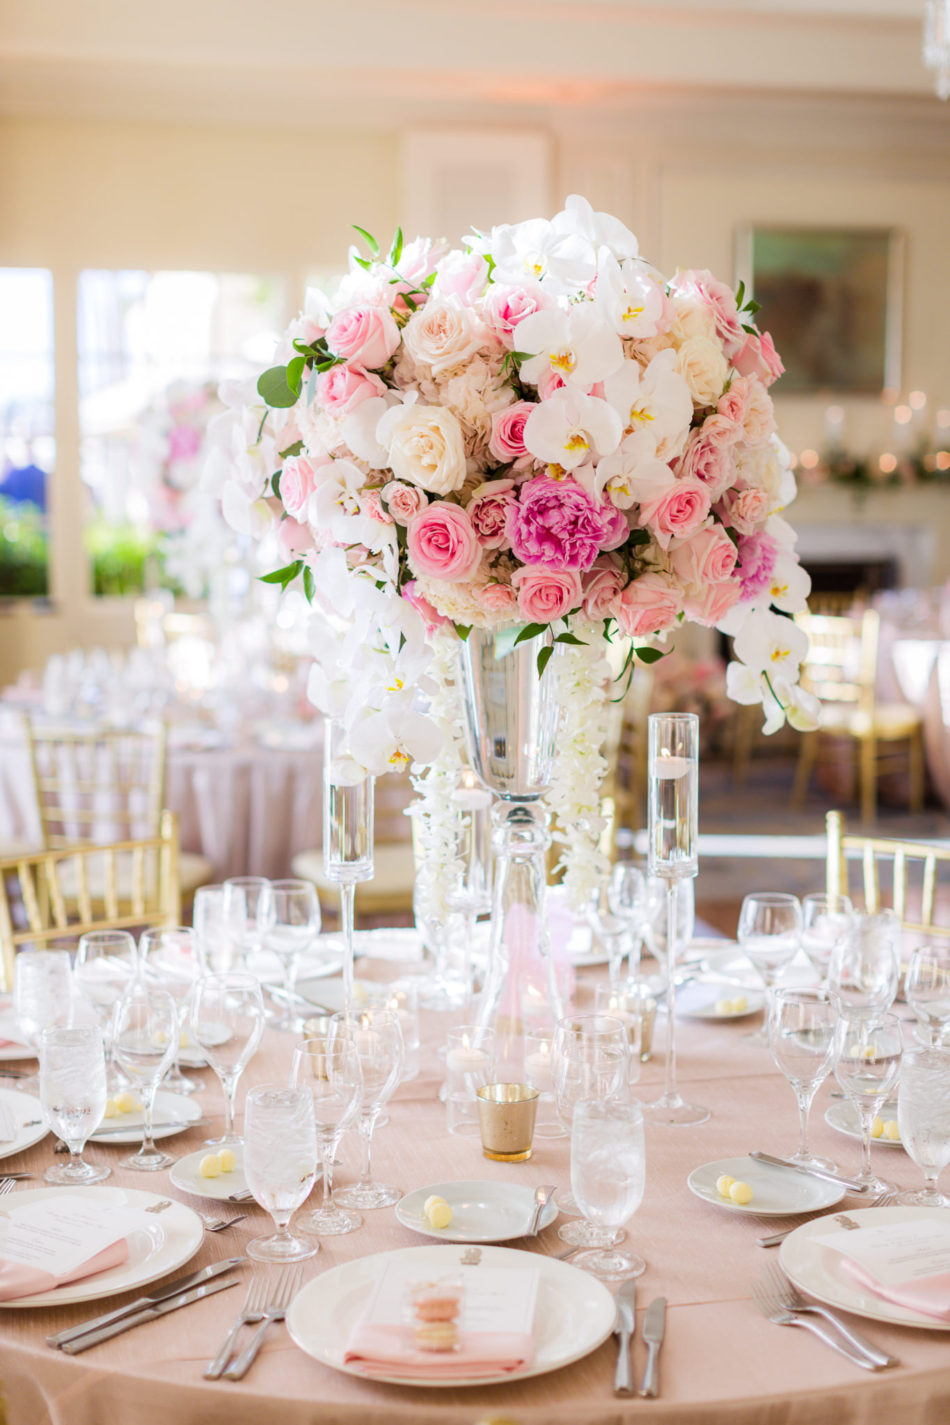 pink reception design, pink centerpiece, pink wedding reception, floral design, florist, wedding florist, wedding flowers, orange county weddings, orange county wedding florist, orange county florist, orange county floral design, flowers by cina